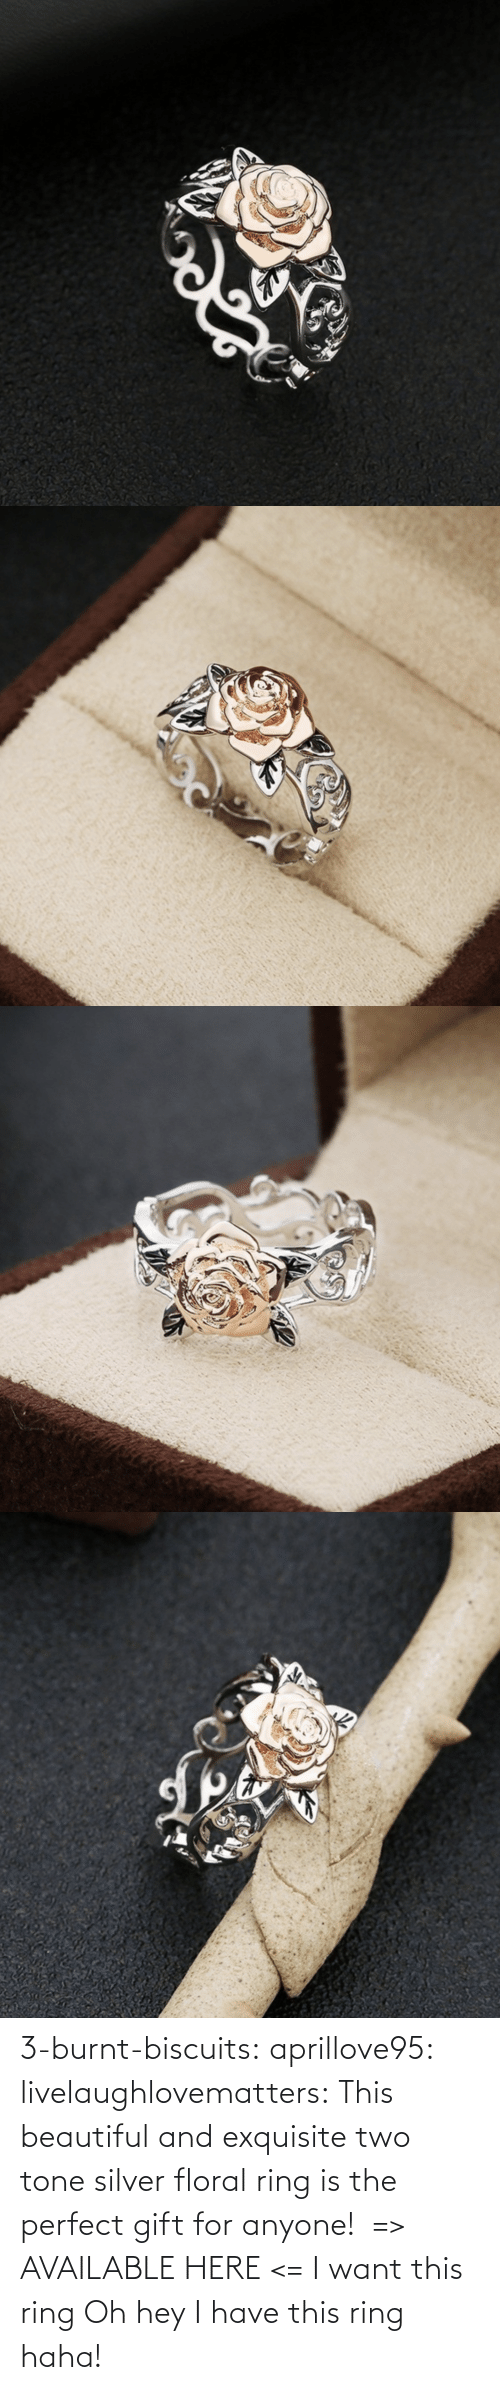 perfect: 3-burnt-biscuits: aprillove95:  livelaughlovematters:  This beautiful and exquisite two tone silver floral ring is the perfect gift for anyone!  => AVAILABLE HERE <=    I want this ring     Oh hey I have this ring haha!